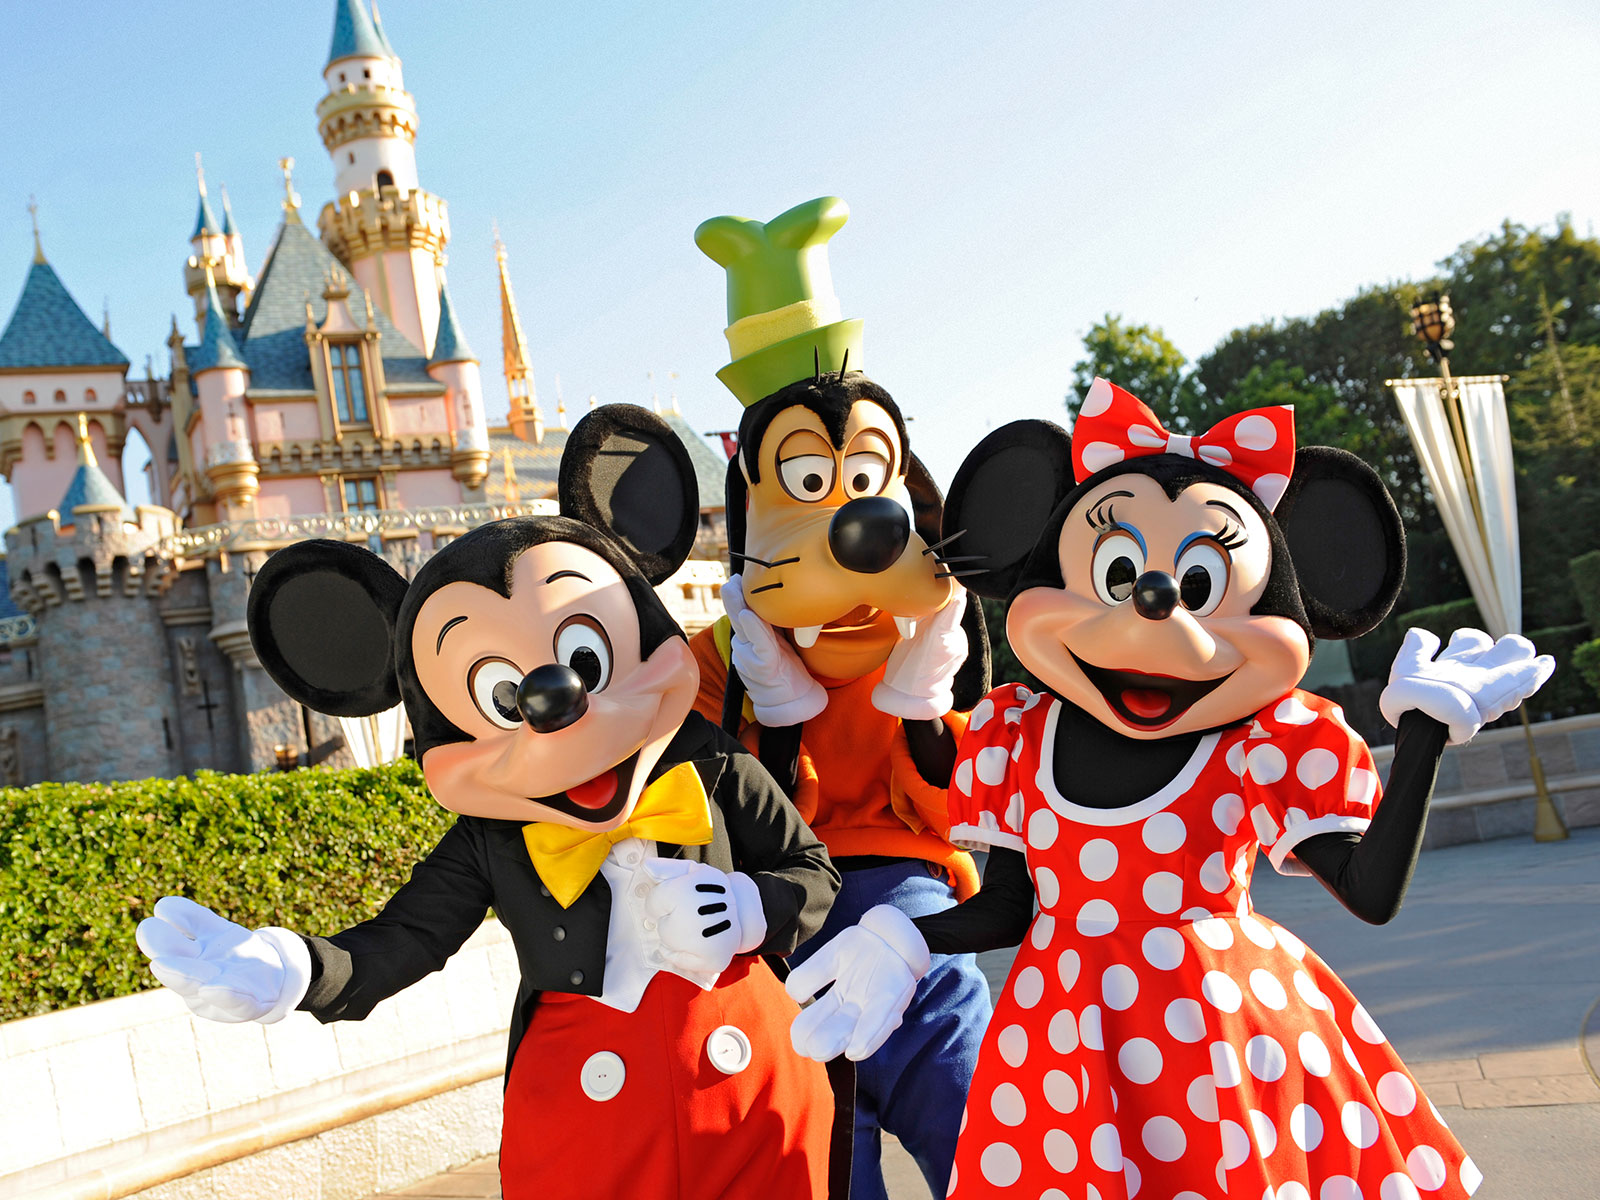 Disneyland Cooling Tower Likely Cause of Legionnaires Outbreak that Left 1 Dead and 21 Sick